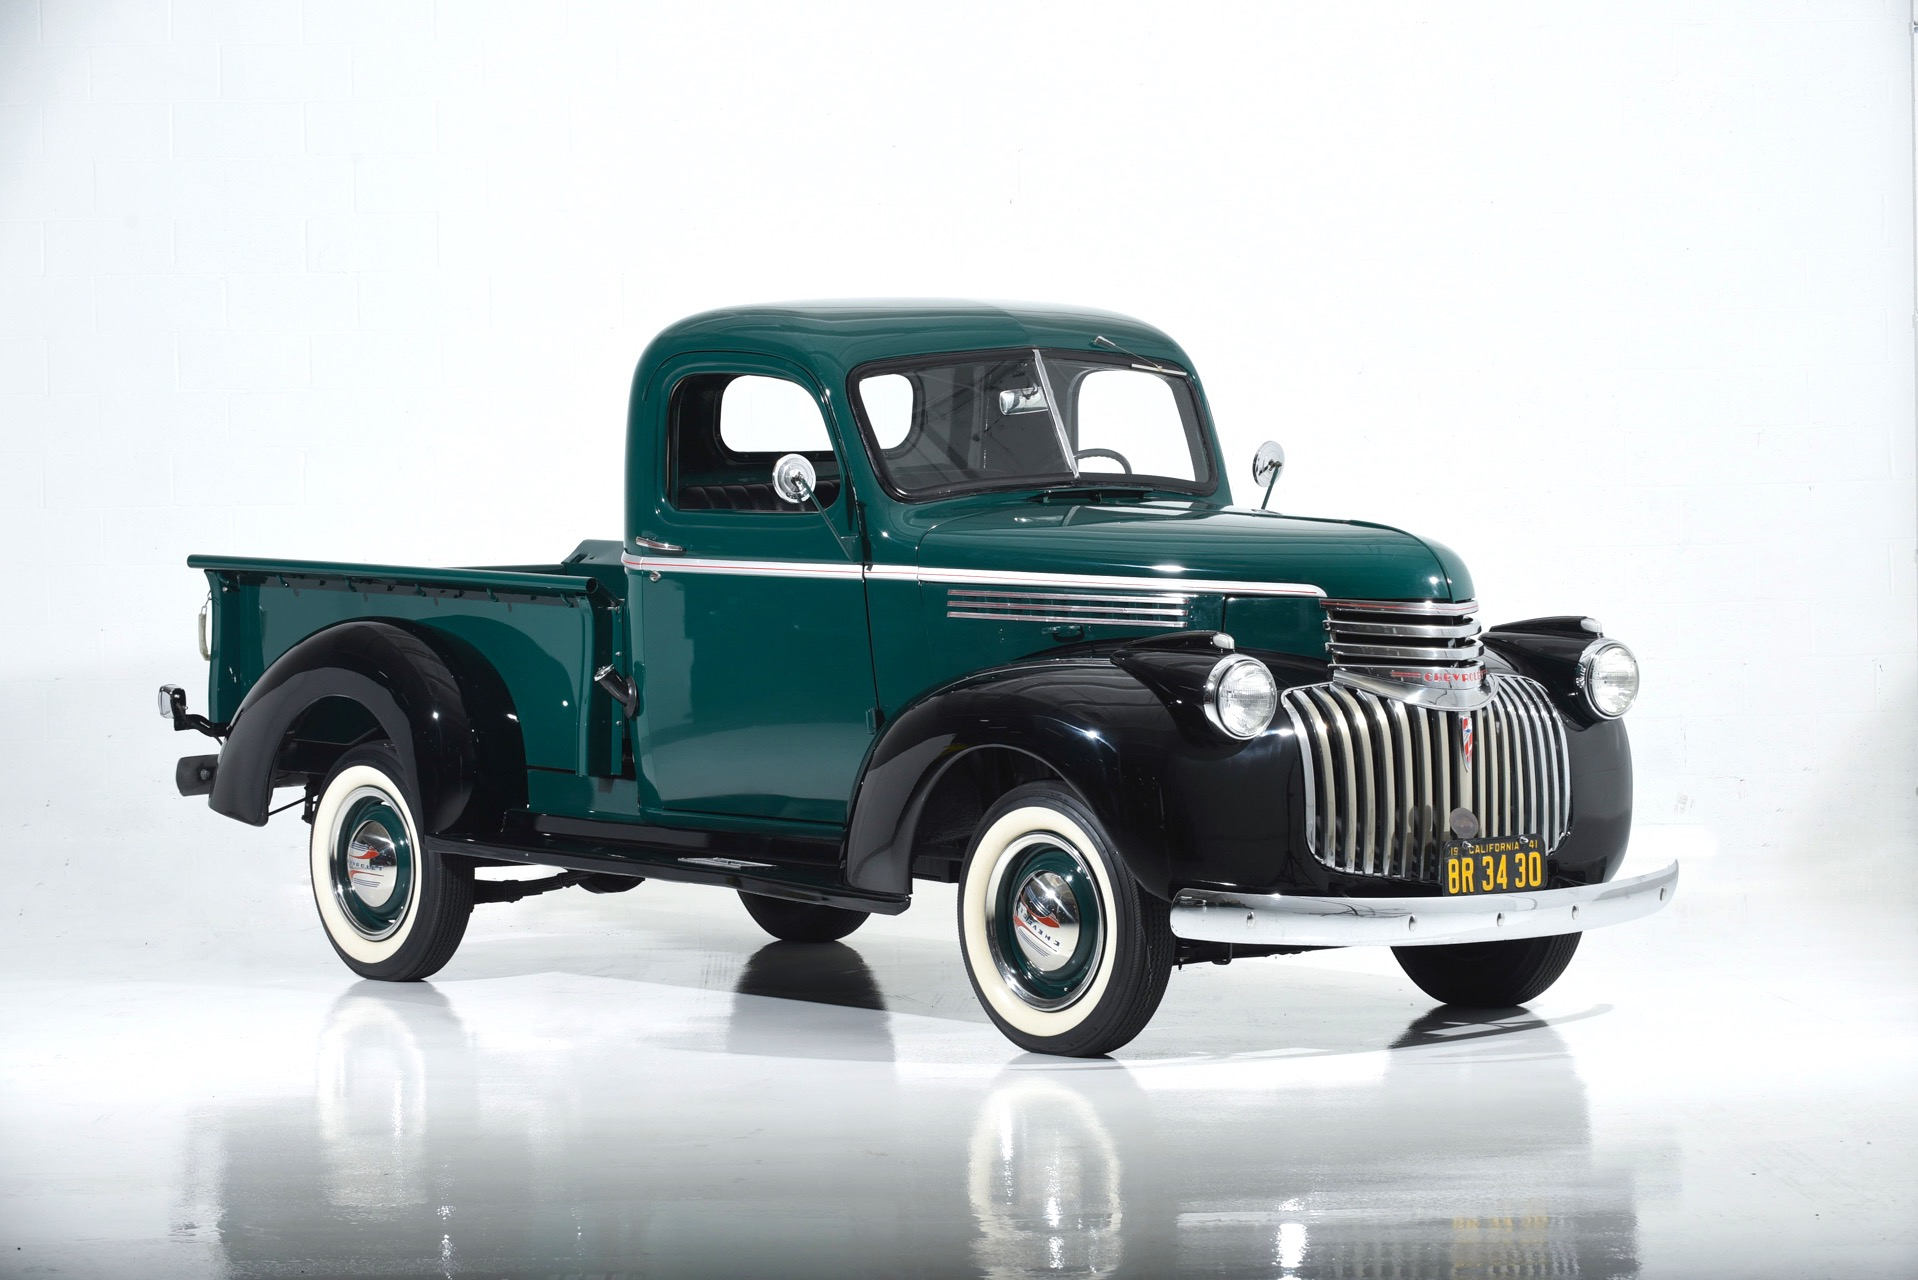 Used 1941 Chevrolet Pickup For Sale ($44,900) | Motorcar Classics